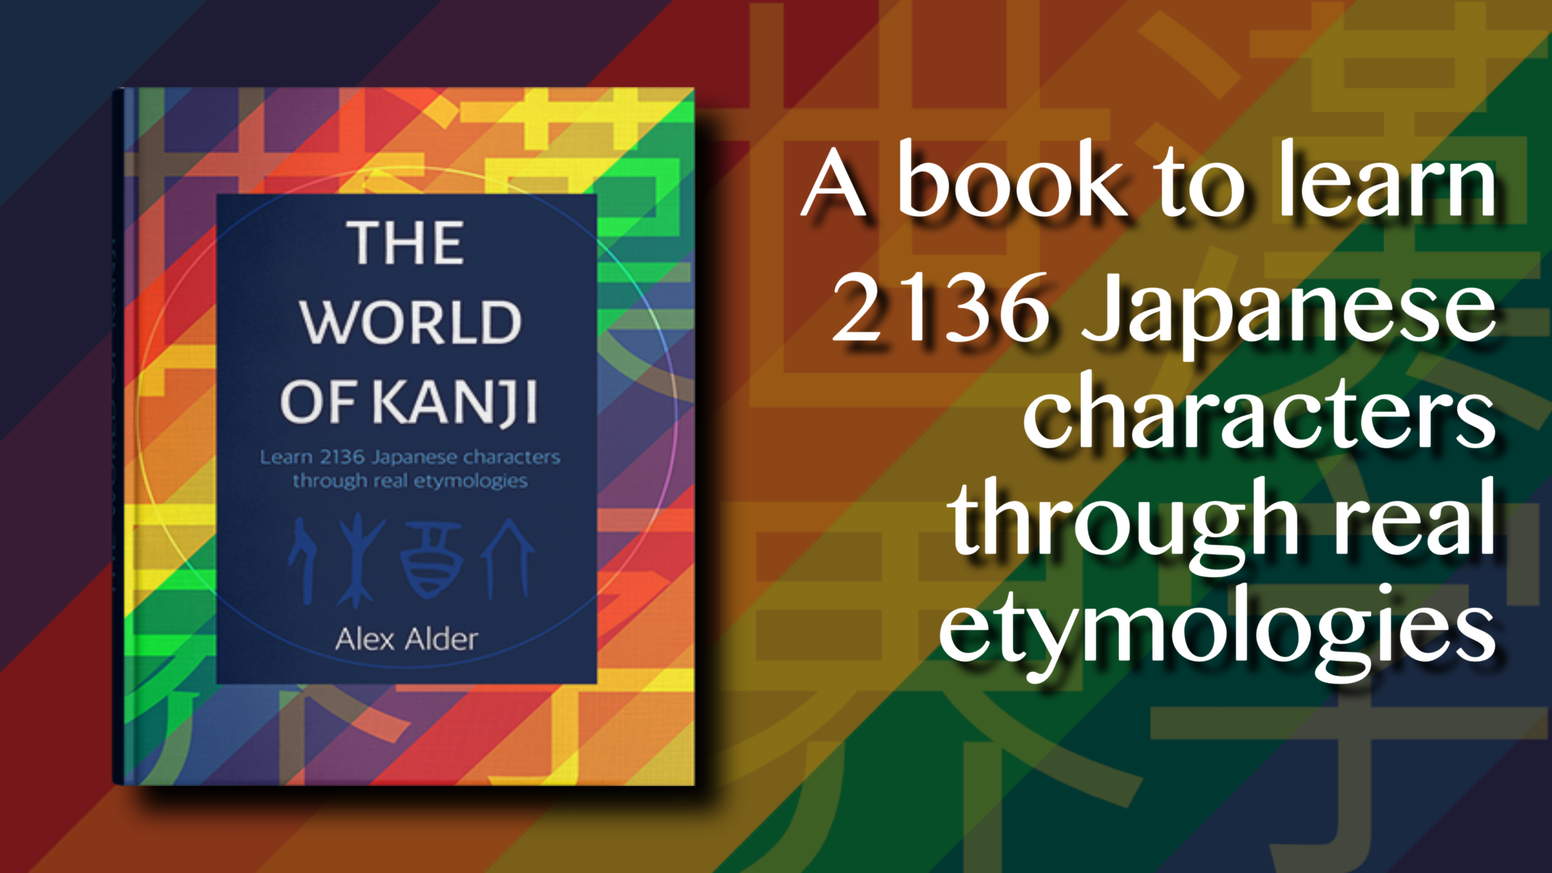 An innovative book to learn and understand 2136 Japanese kanji using real etymologies.